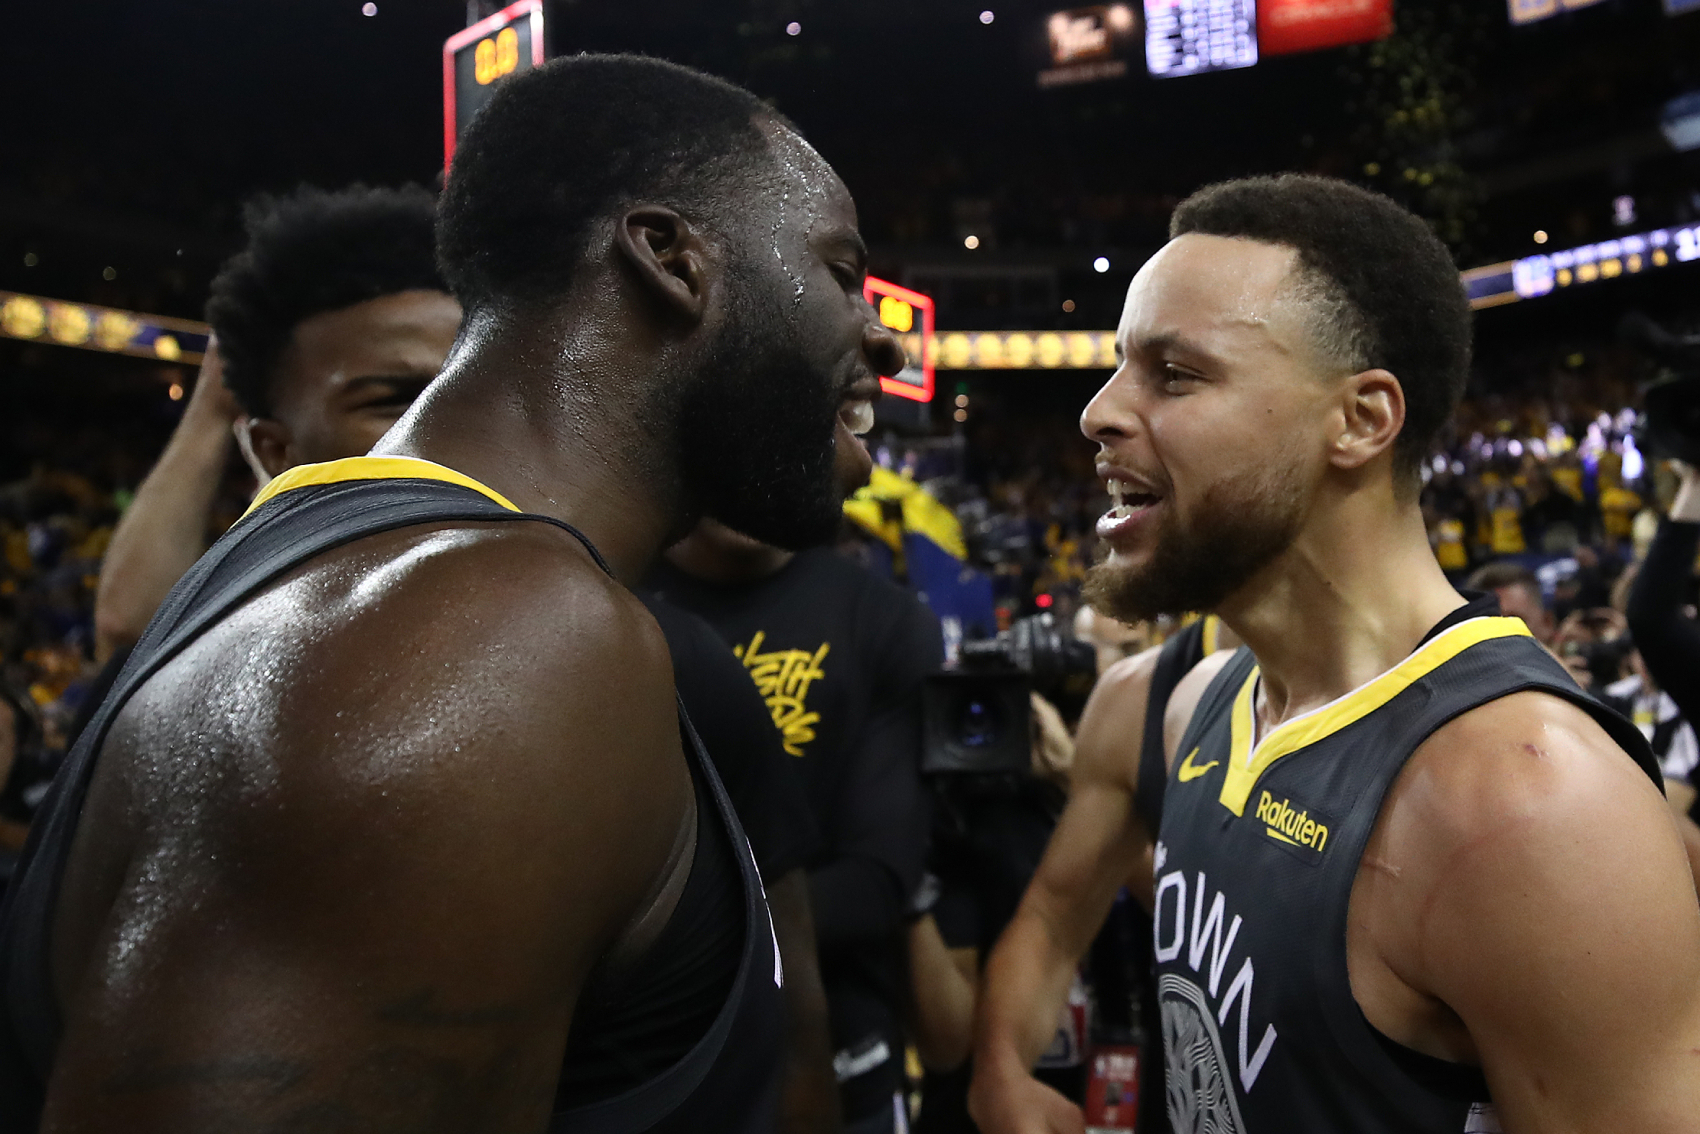 Like the Golden State Warriors as a team last season, Draymond Green had a down year. His teammate Stephen Curry has a strong message, though.